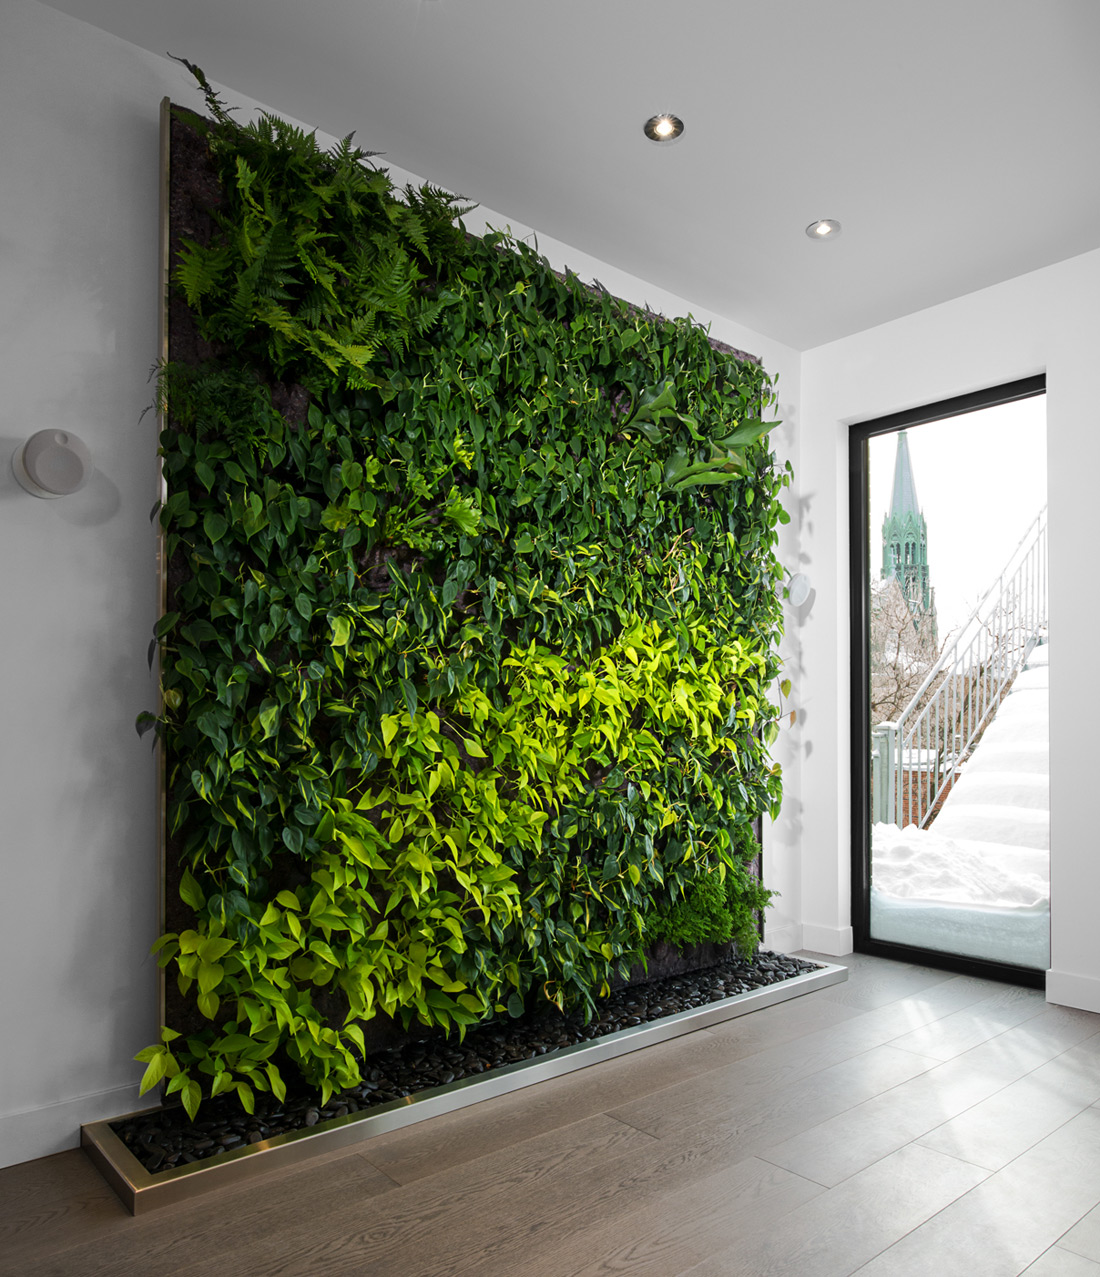 mur vgtal interieur gallery of plante pour mur vegetal interieur with mur vgtal interieur. Black Bedroom Furniture Sets. Home Design Ideas